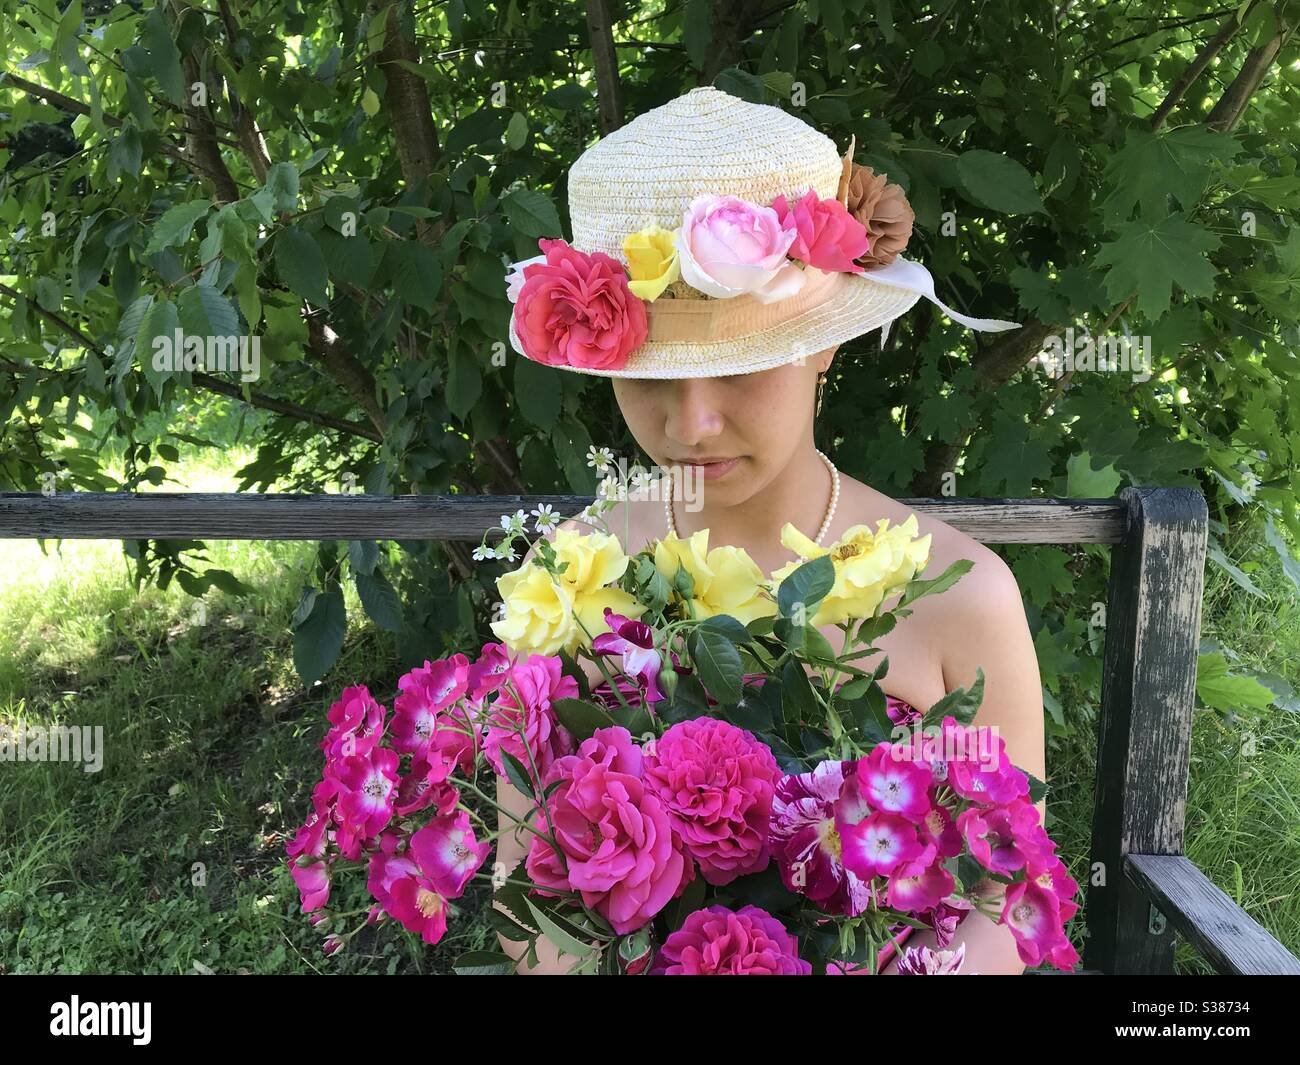 Young Girl with Flowers Stock Photo